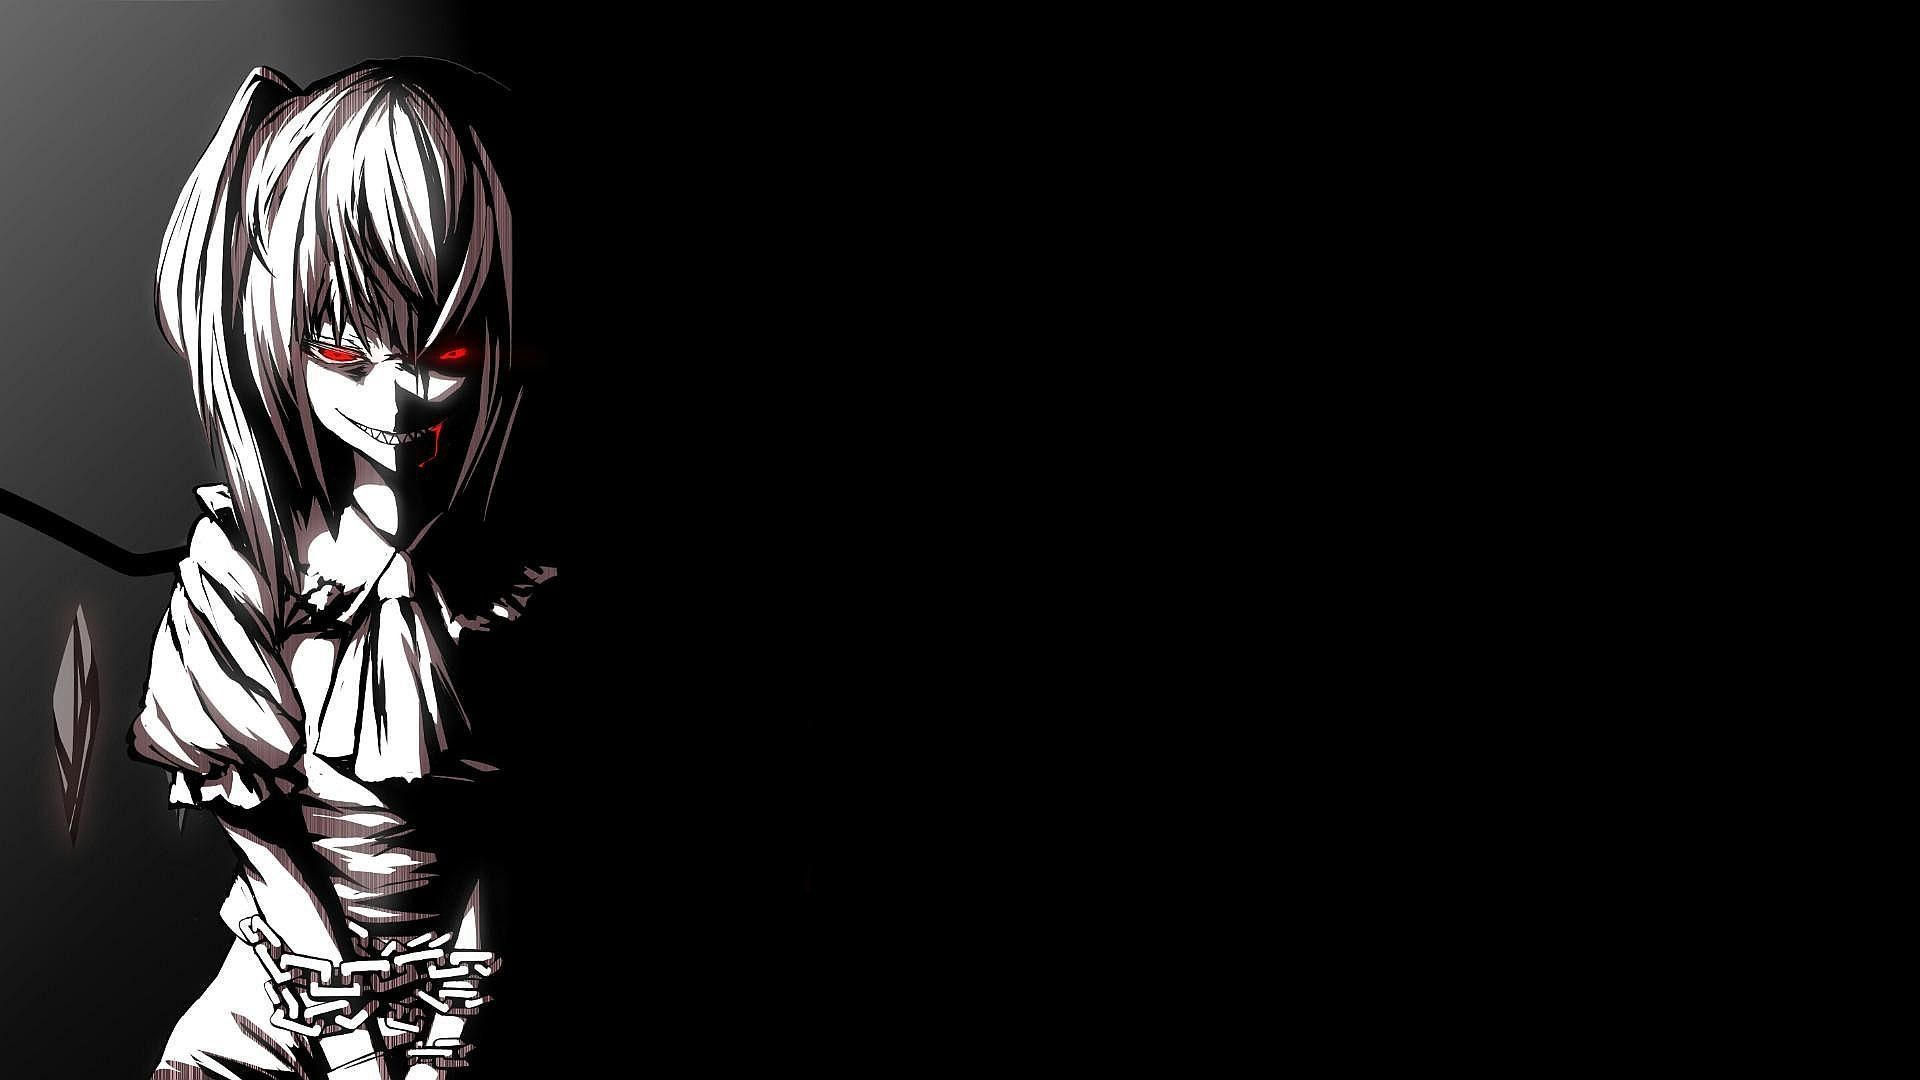 Dark Anime Wallpapers - Wallpapers Browse